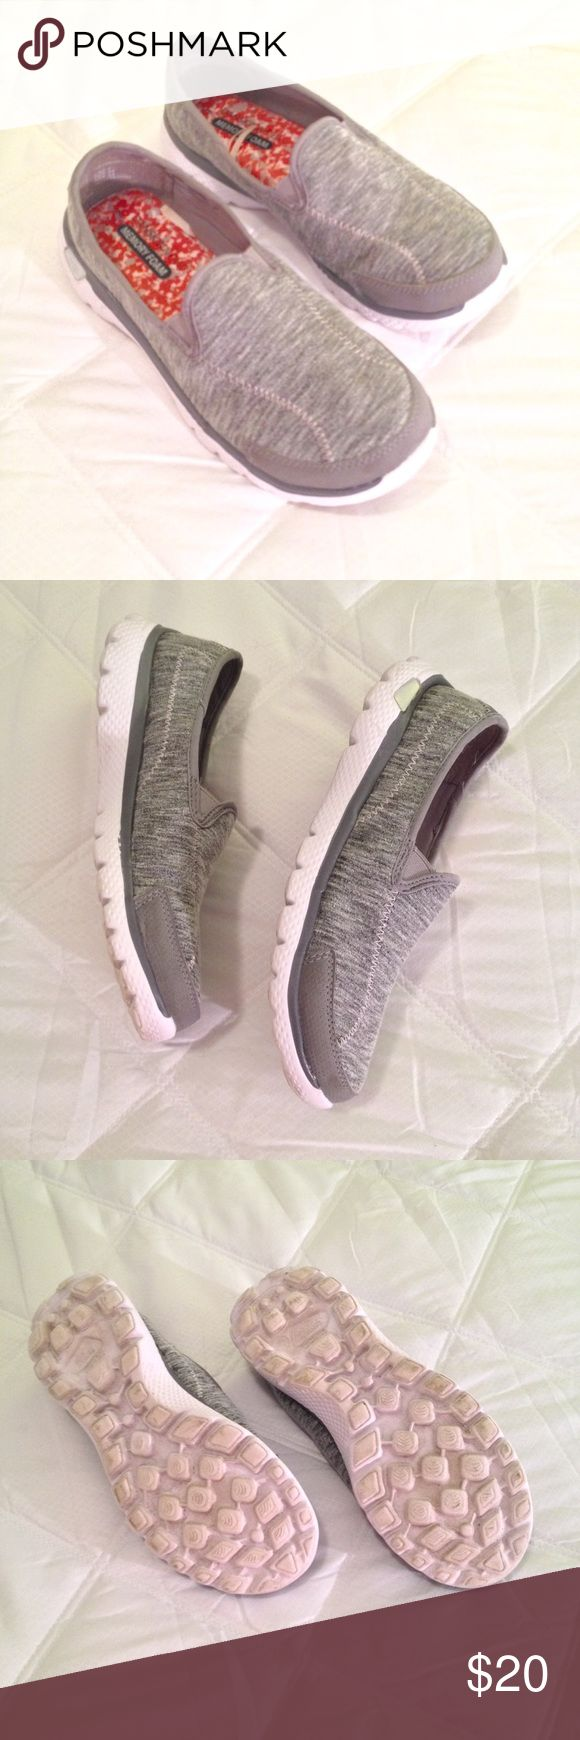 DANSKIN Now Memory Foam Sneaker Great condition, memory foam sneaker. Grey with white sole. Danskin Now Shoes Athletic Shoes